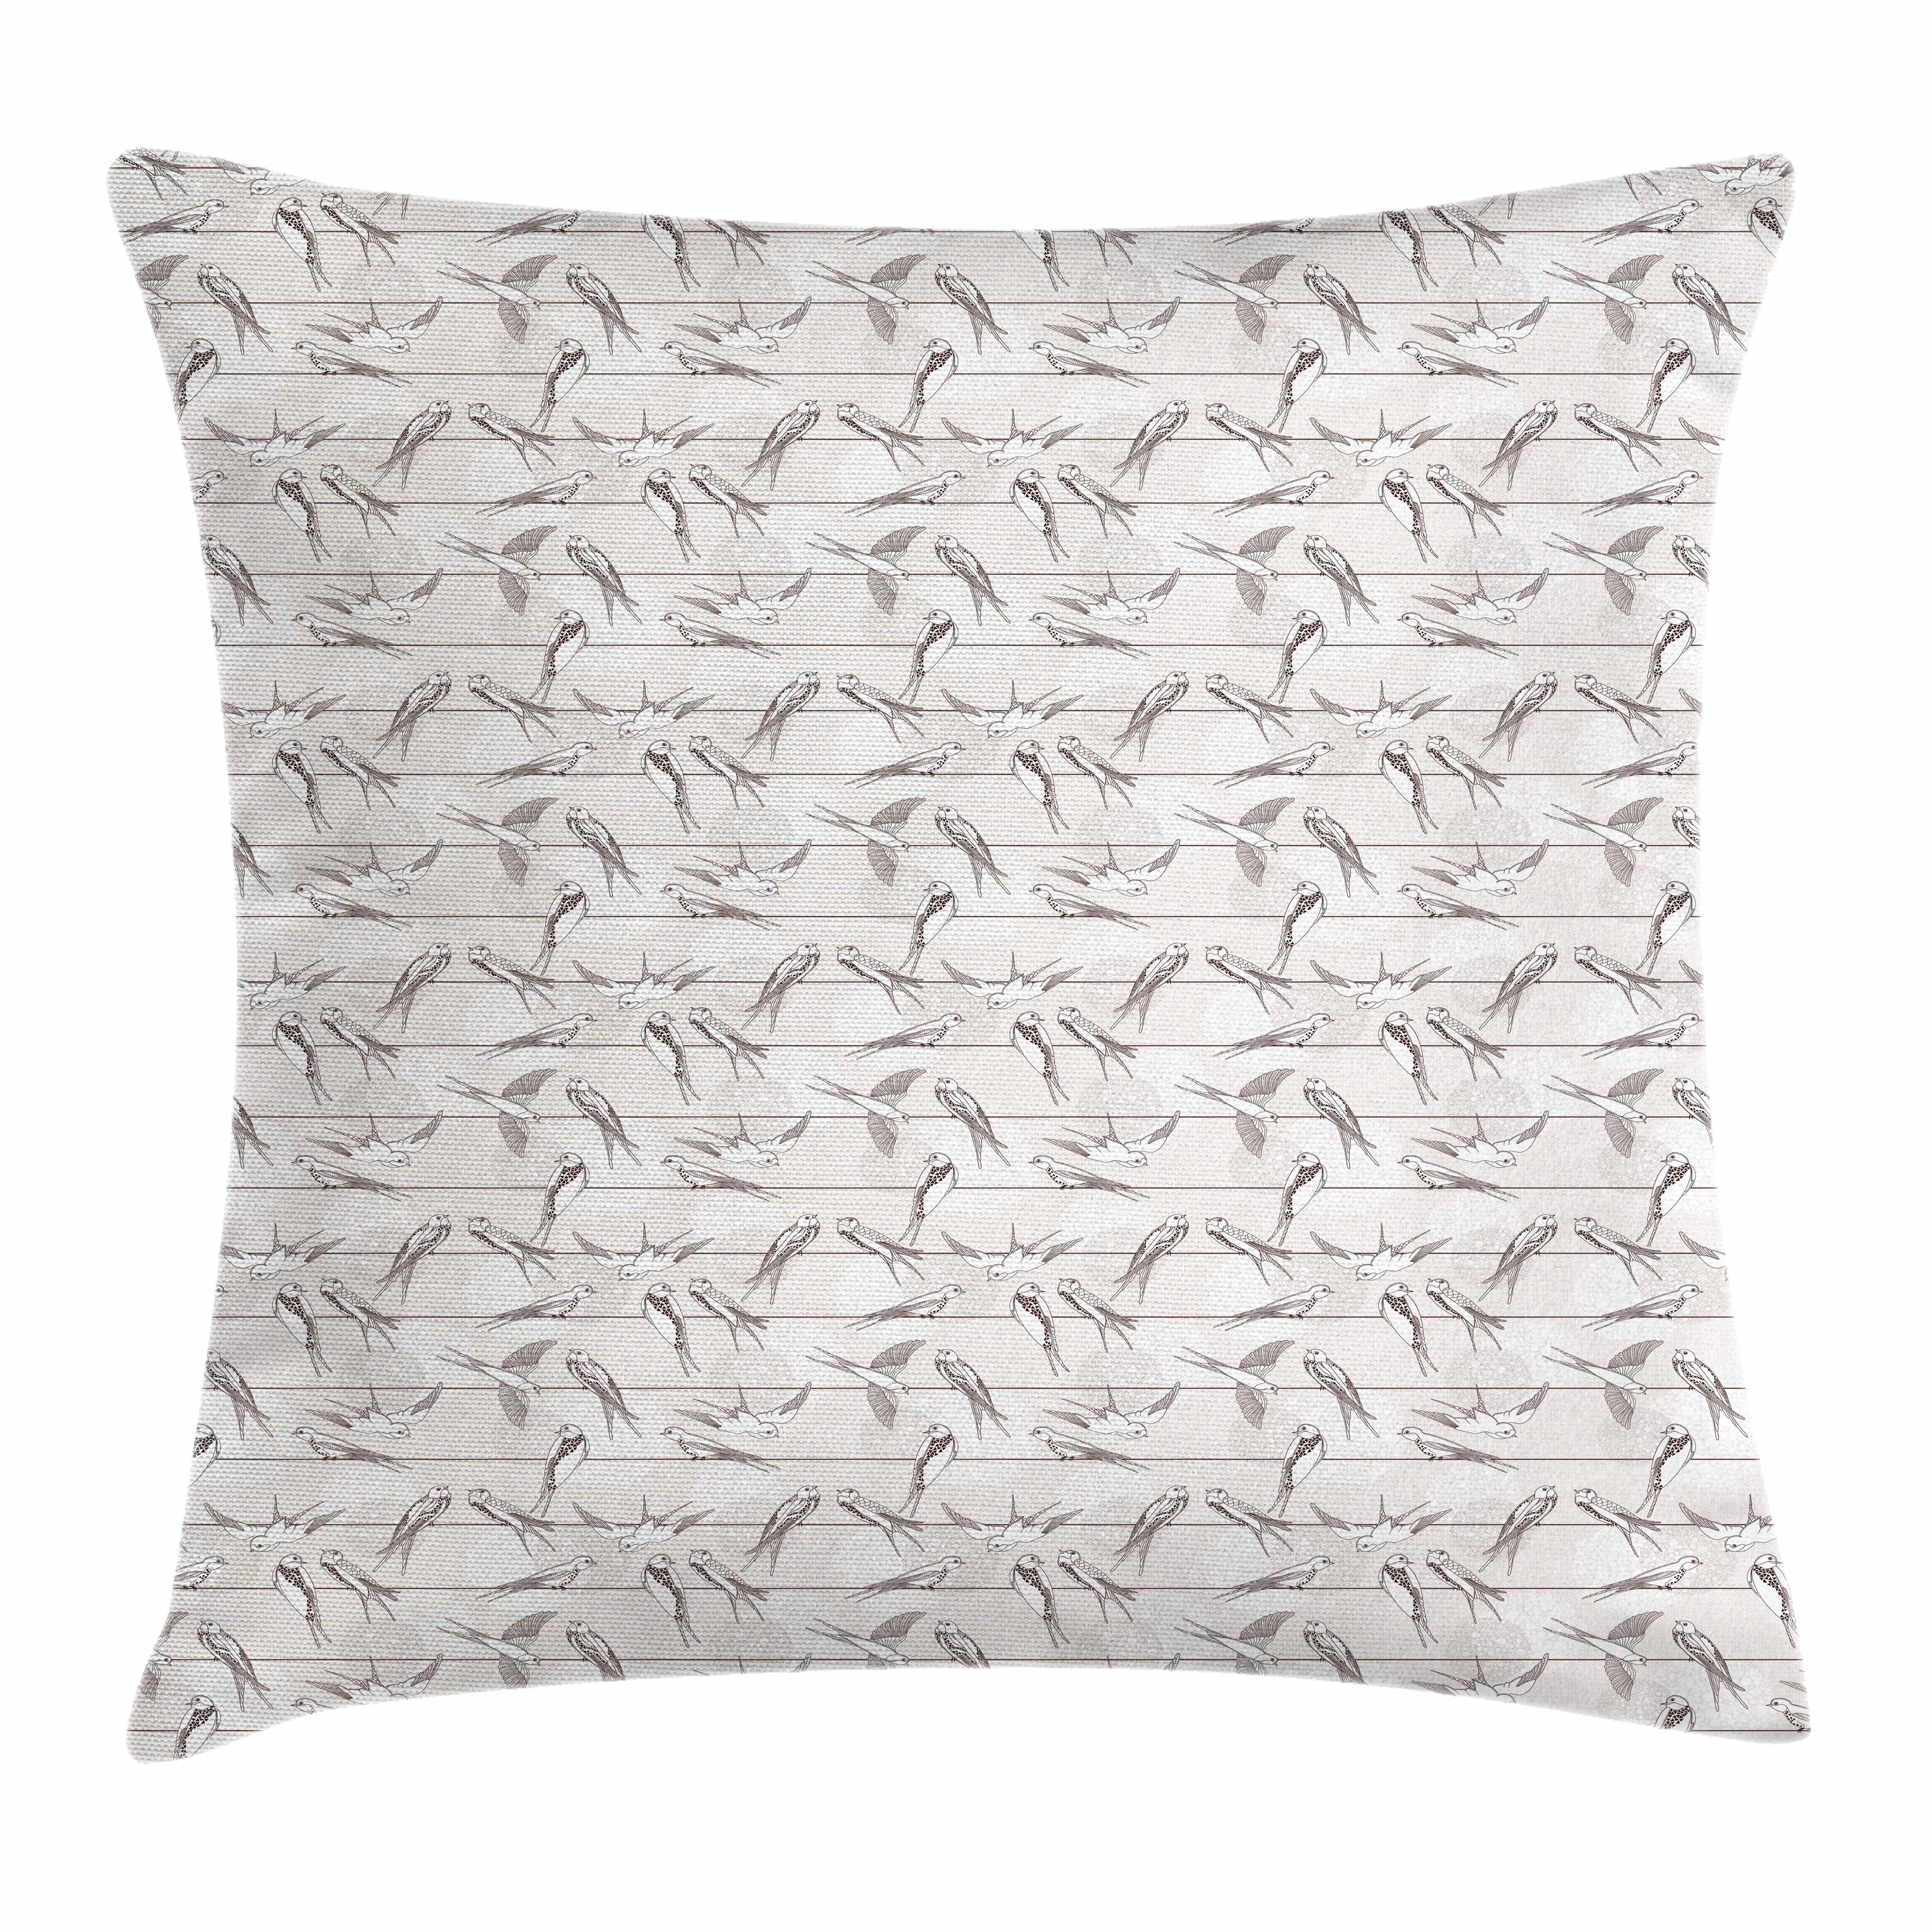 Birds Throw Pillow Cushion Cover, Spotted Neck Swallow and Red-Rumped Swallow Perching on Parallel Wires, Decorative Square Accent Pillow Case, 18 X 18 Inches, Pale Grey and Dimgrey, by Ambesonne